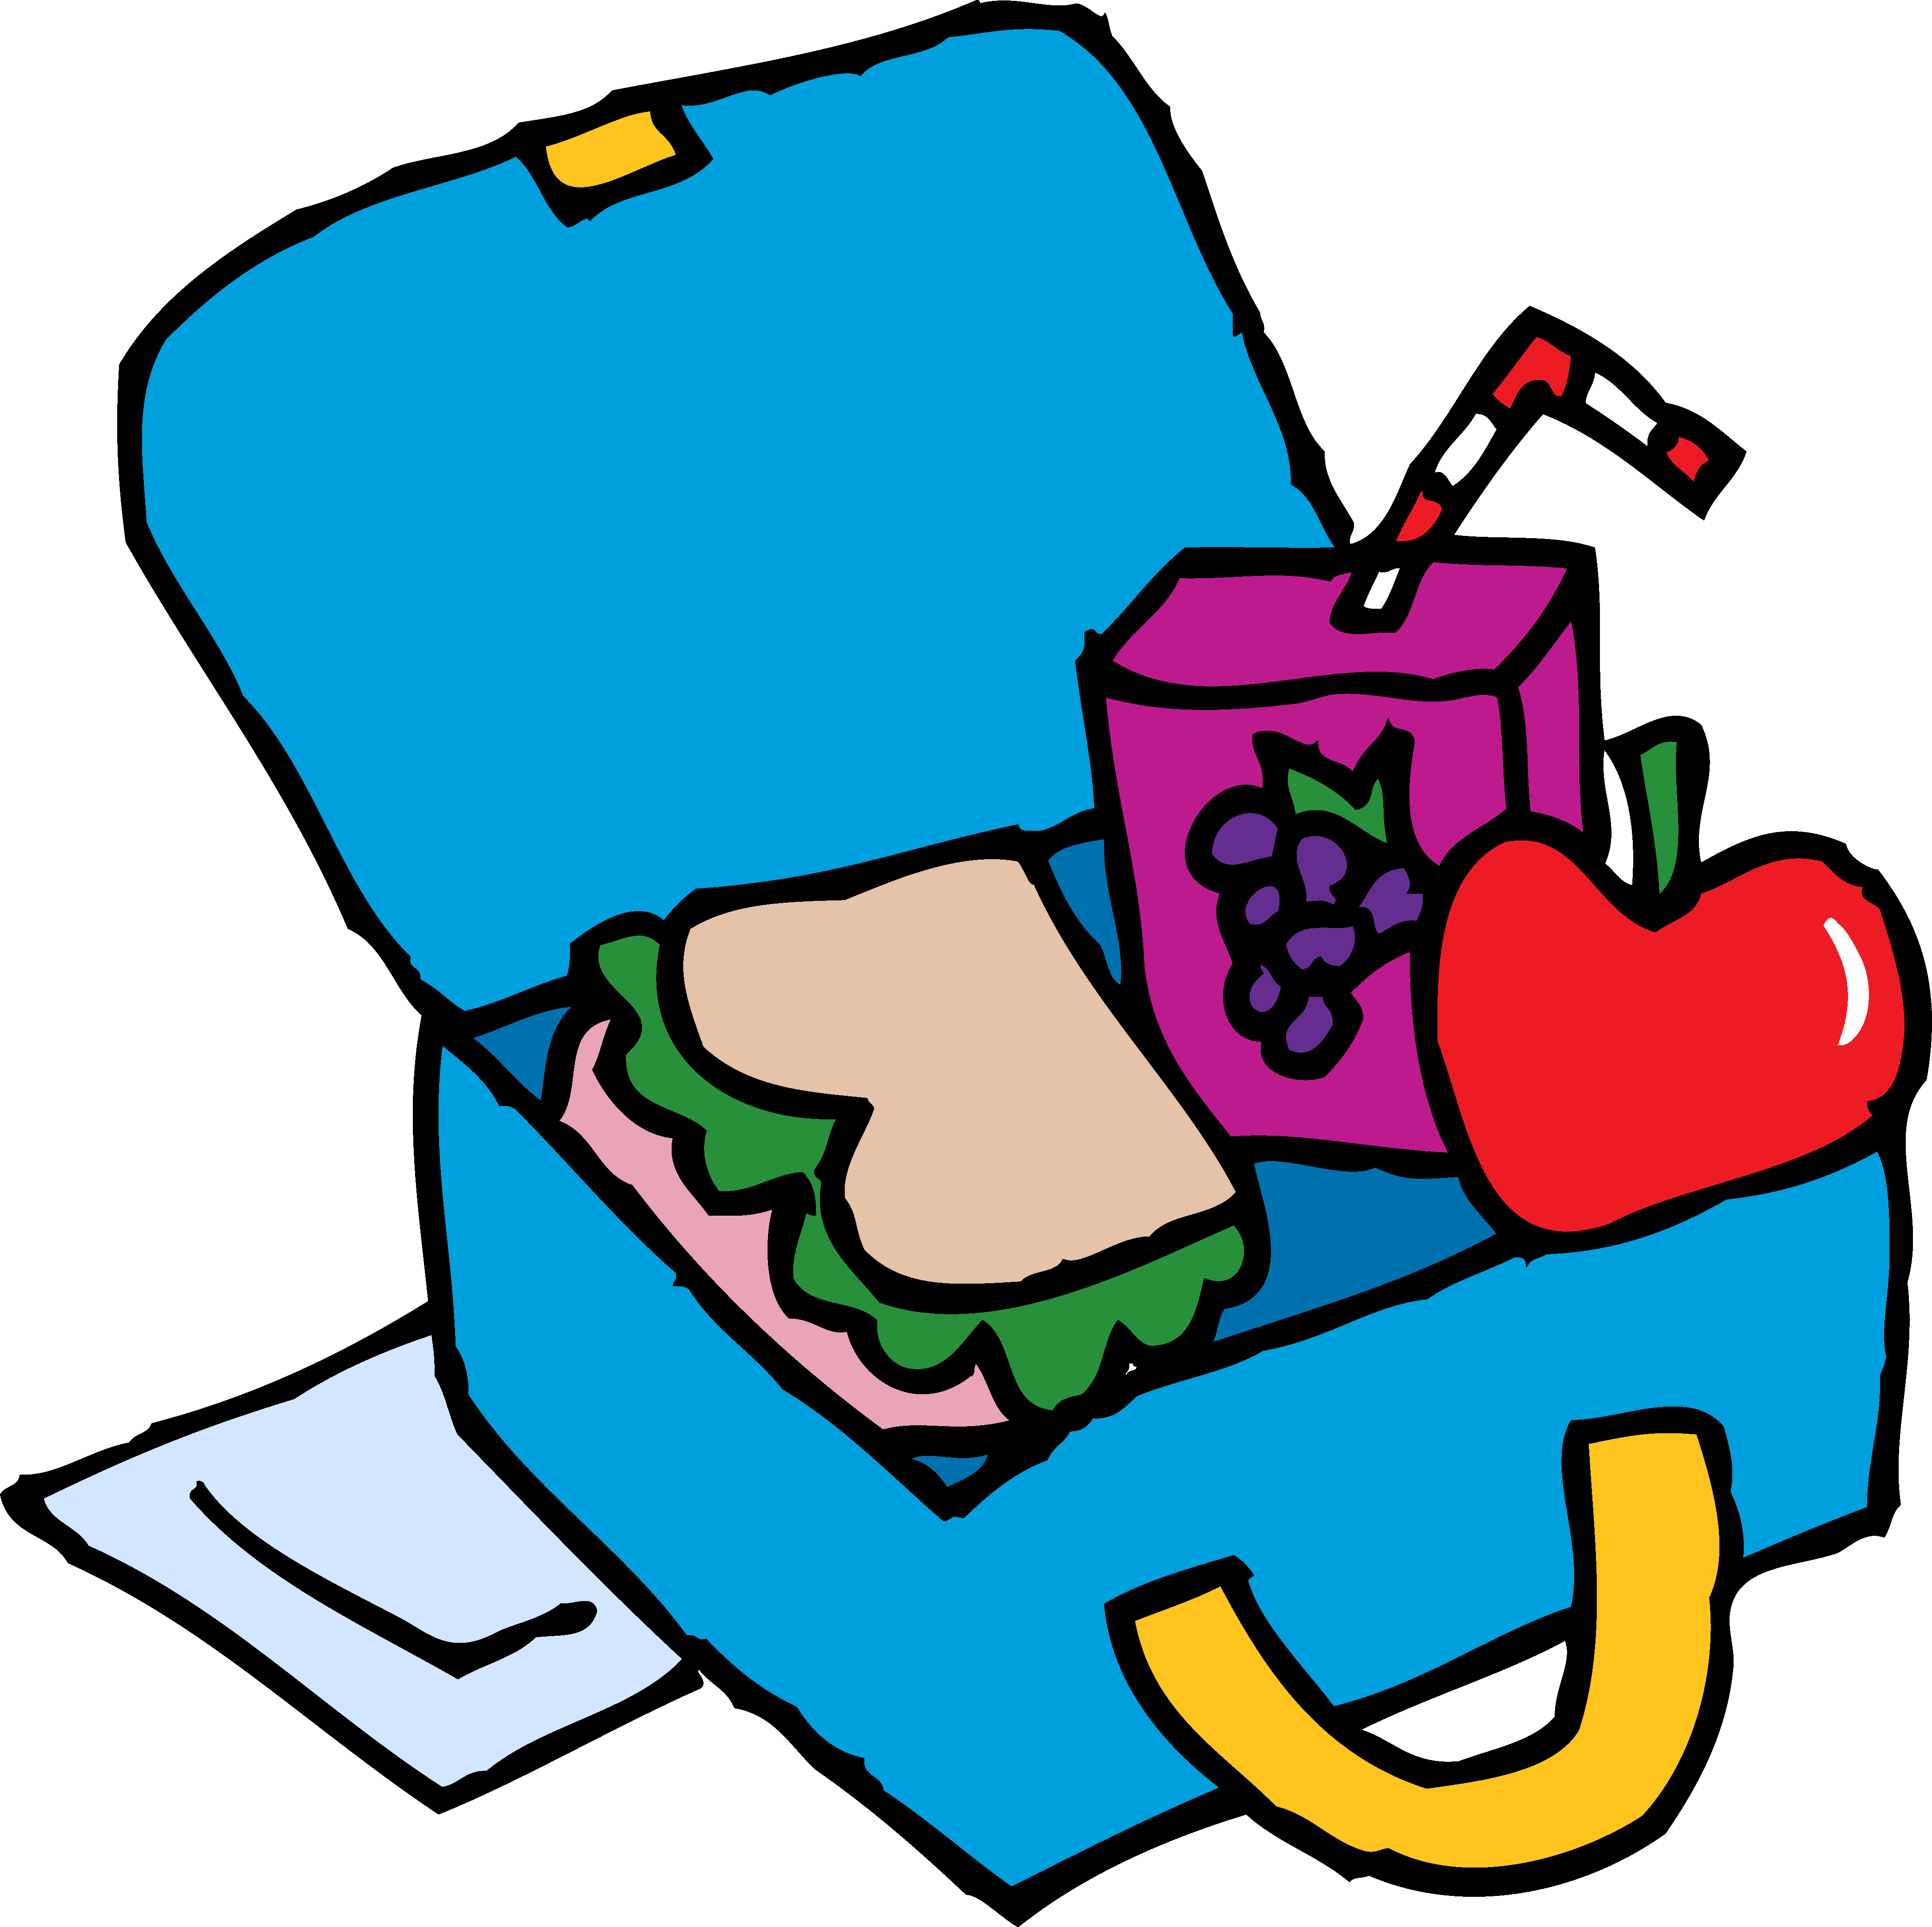 Lunch bag clipart free clipart images-Lunch bag clipart free clipart images-6